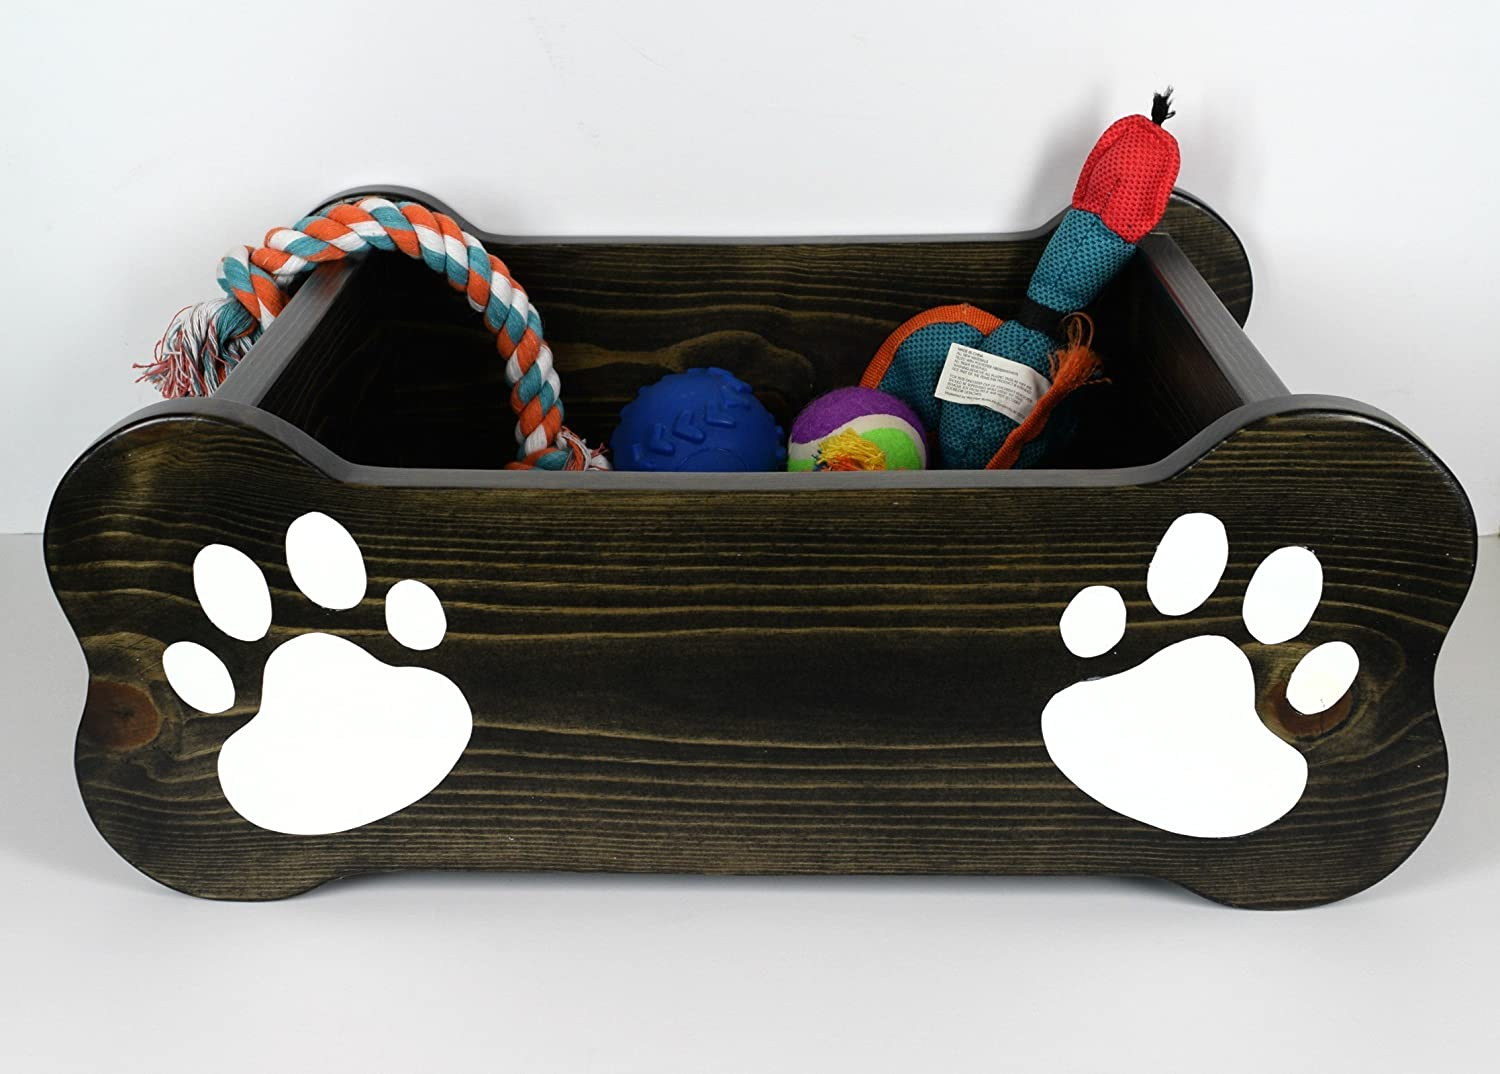 Dog toy box, pet storage bin, small dog bed, paw print paint, wood container, chew toy, rope, bone, fur baby critter, ebony stain